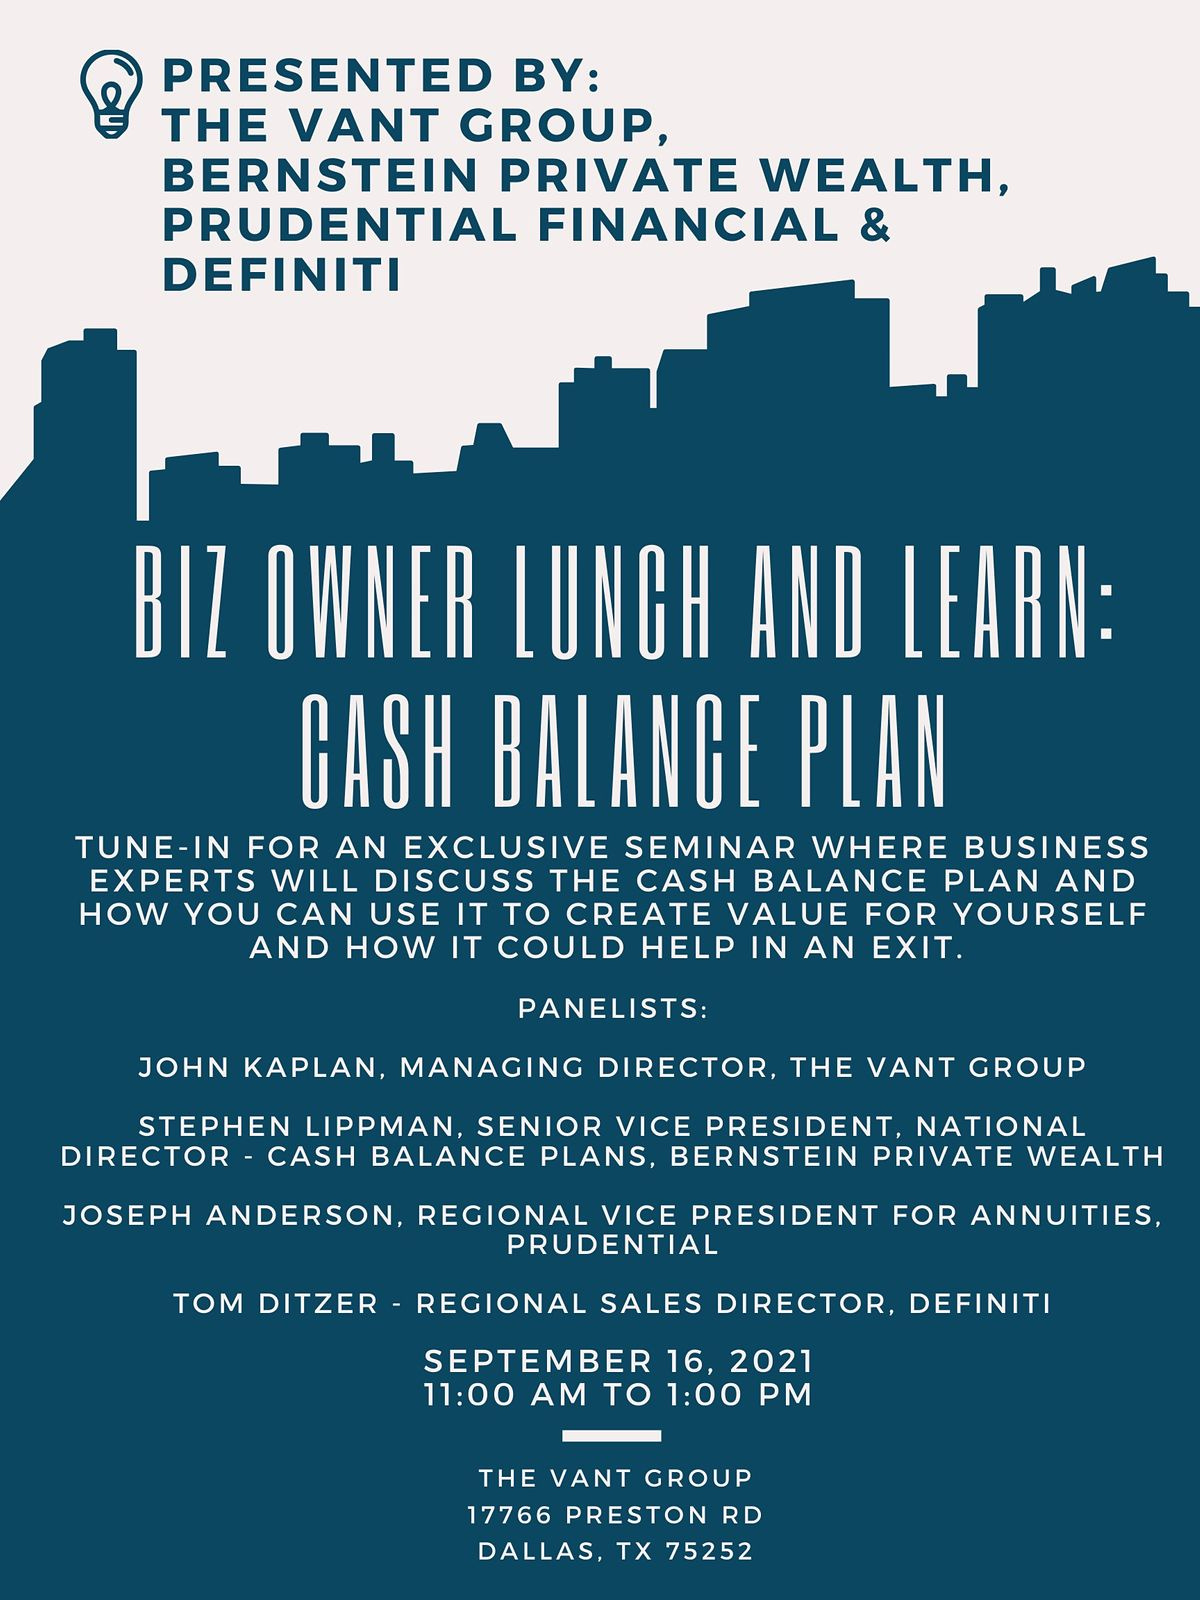 Biz owner Lunch and Learn: Cash Balance Plan